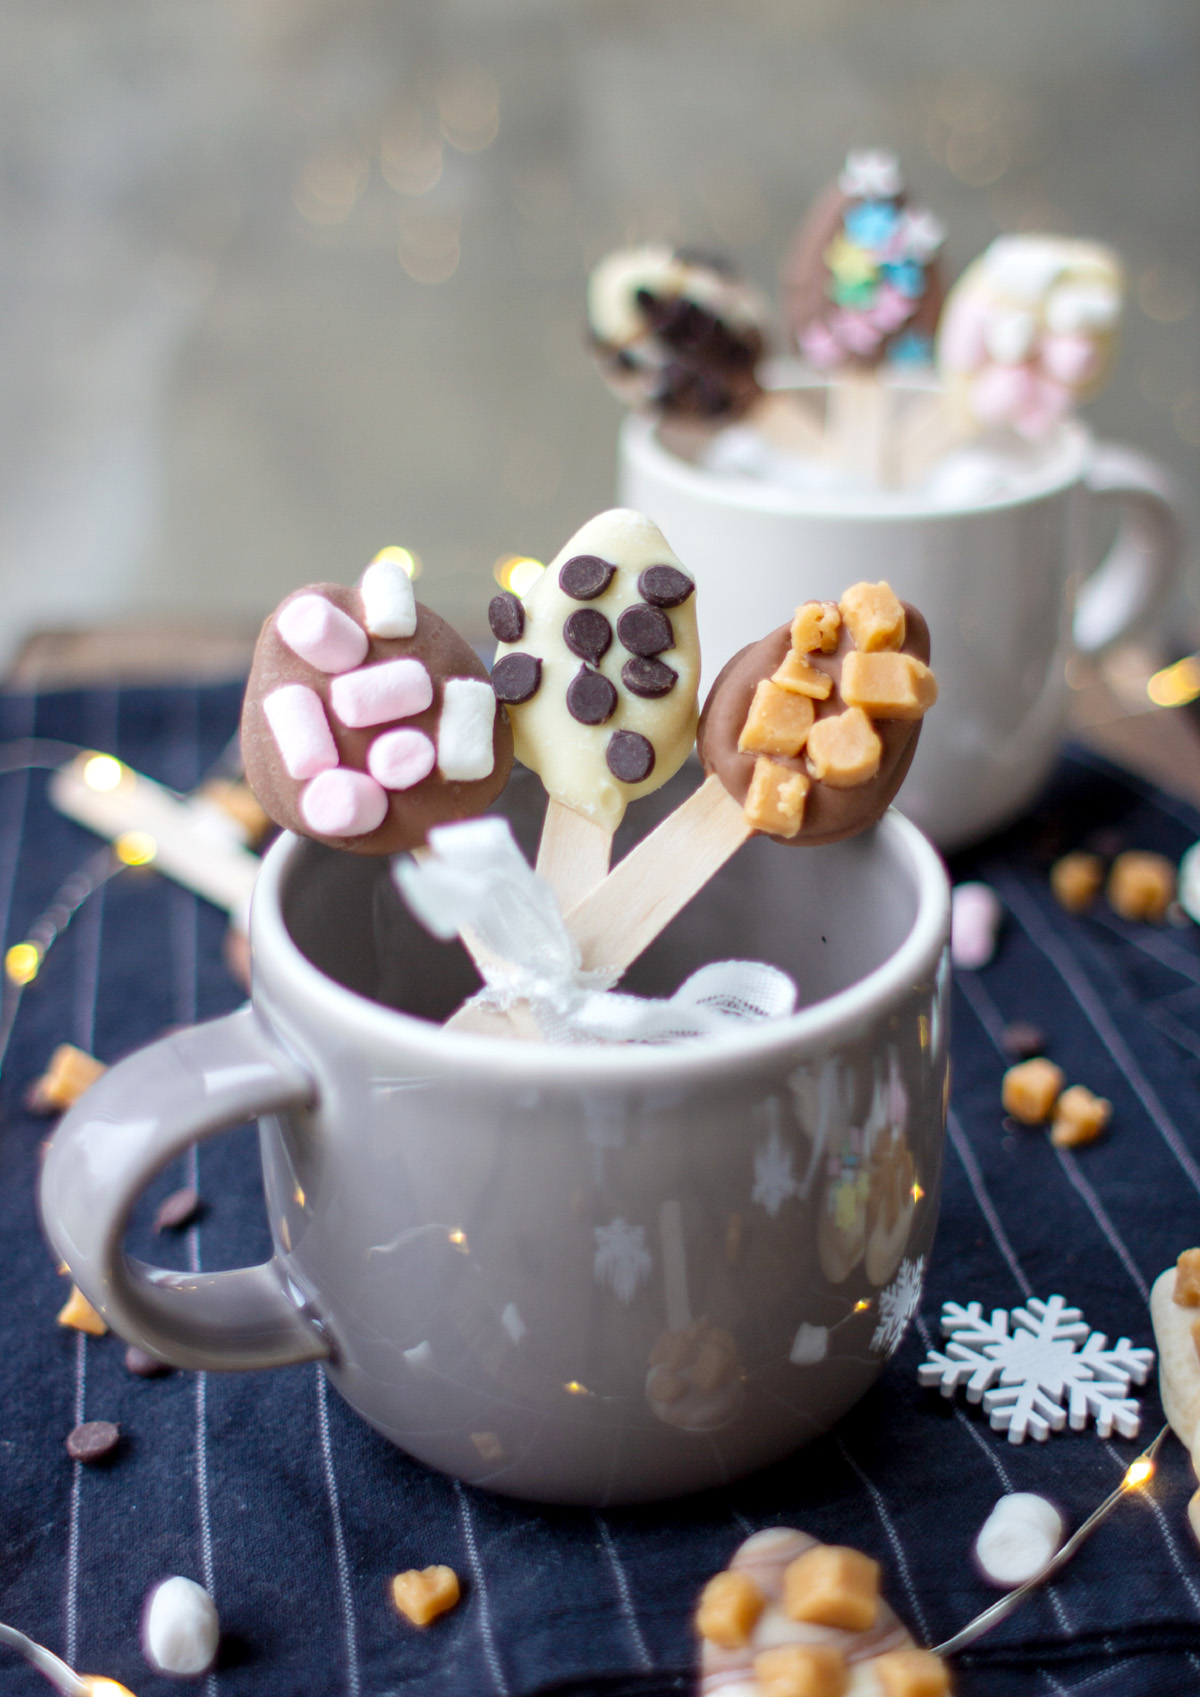 missredfox - 12giftswithlovegoesXMAS - 14 - Try Try Try - Hot-Choc-Spoons - 01